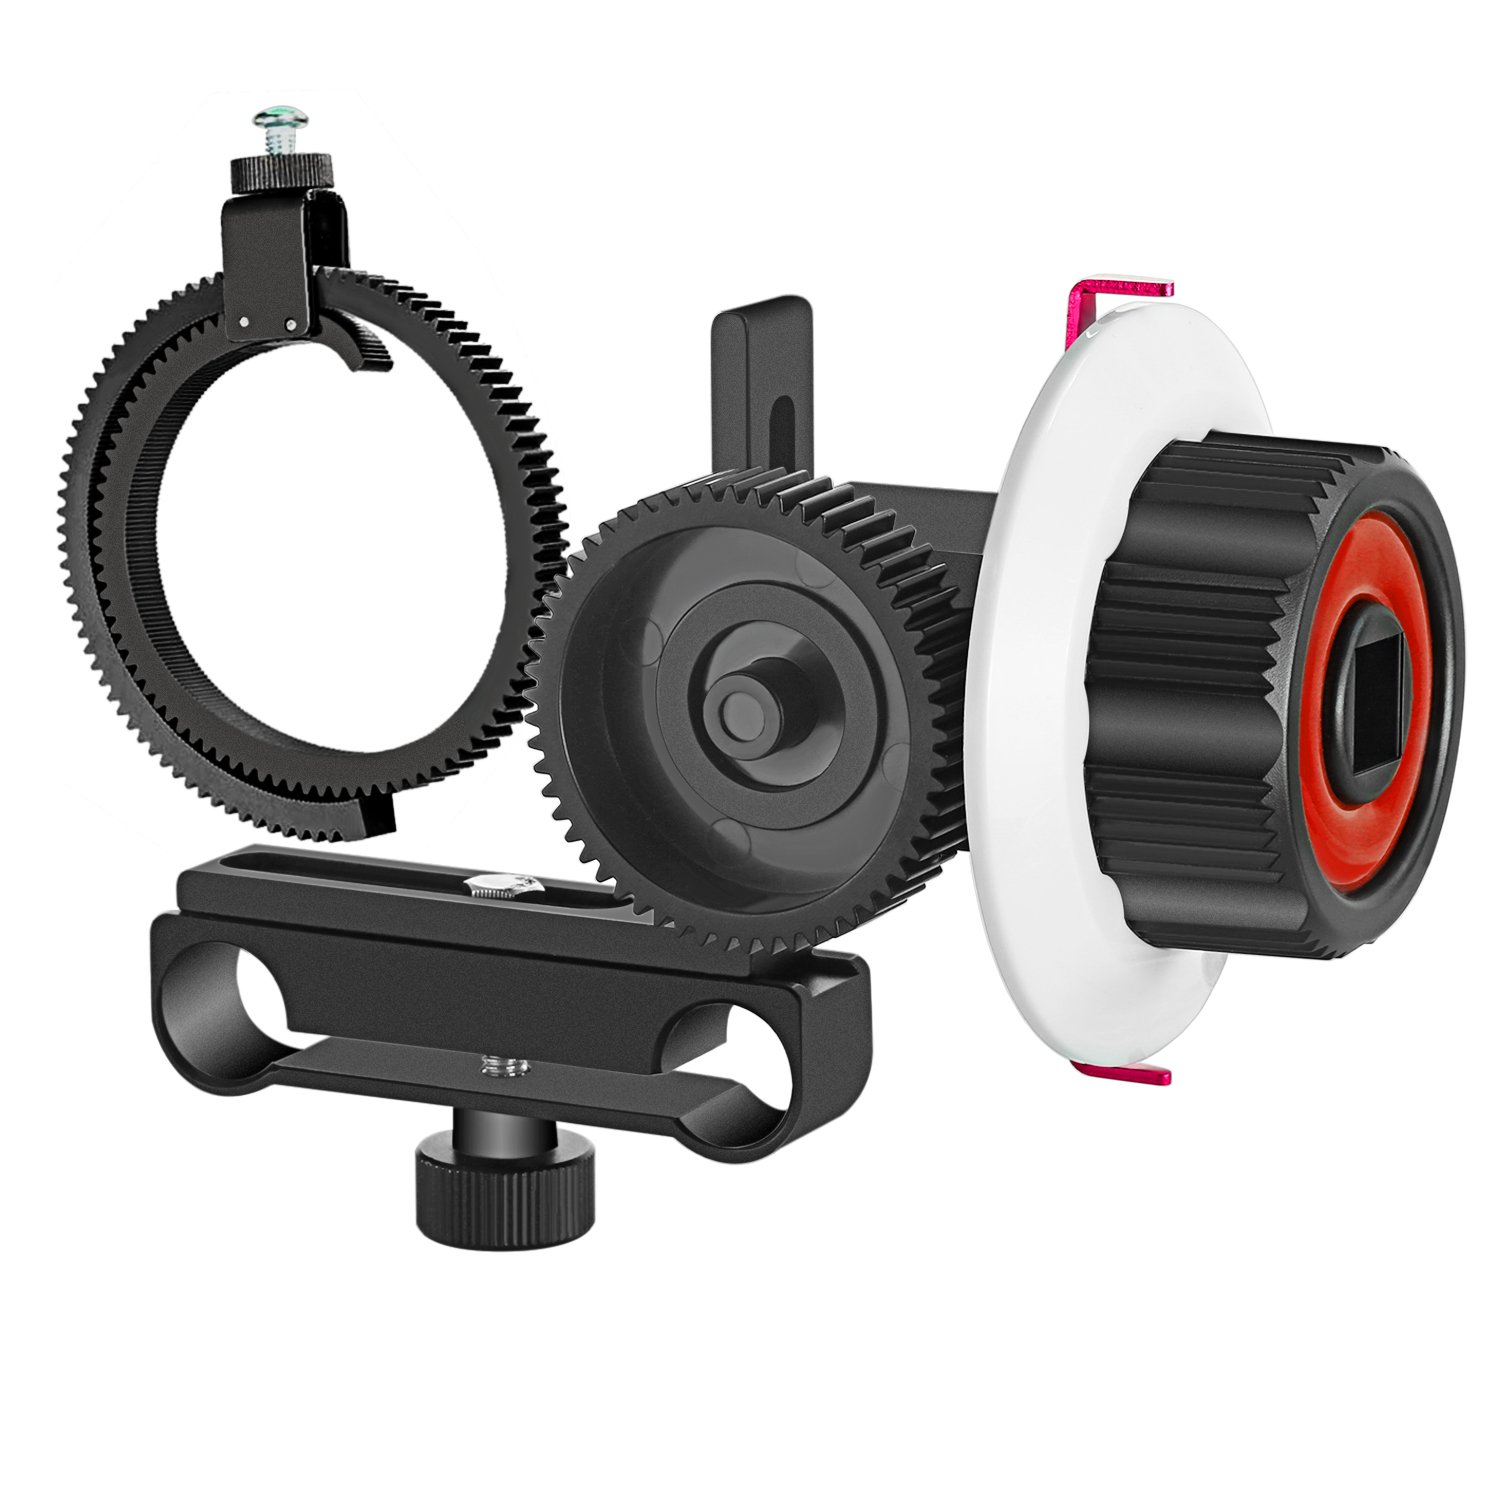 Neewer Follow Focus with Gear Ring Belt for Canon Nikon Sony and Other DSLR Camera Camcorder DV Video Fits 15mm Rod Film Making System, Shoulder Support, Stabilizer, Movie Rig(Red+Black) 10090365